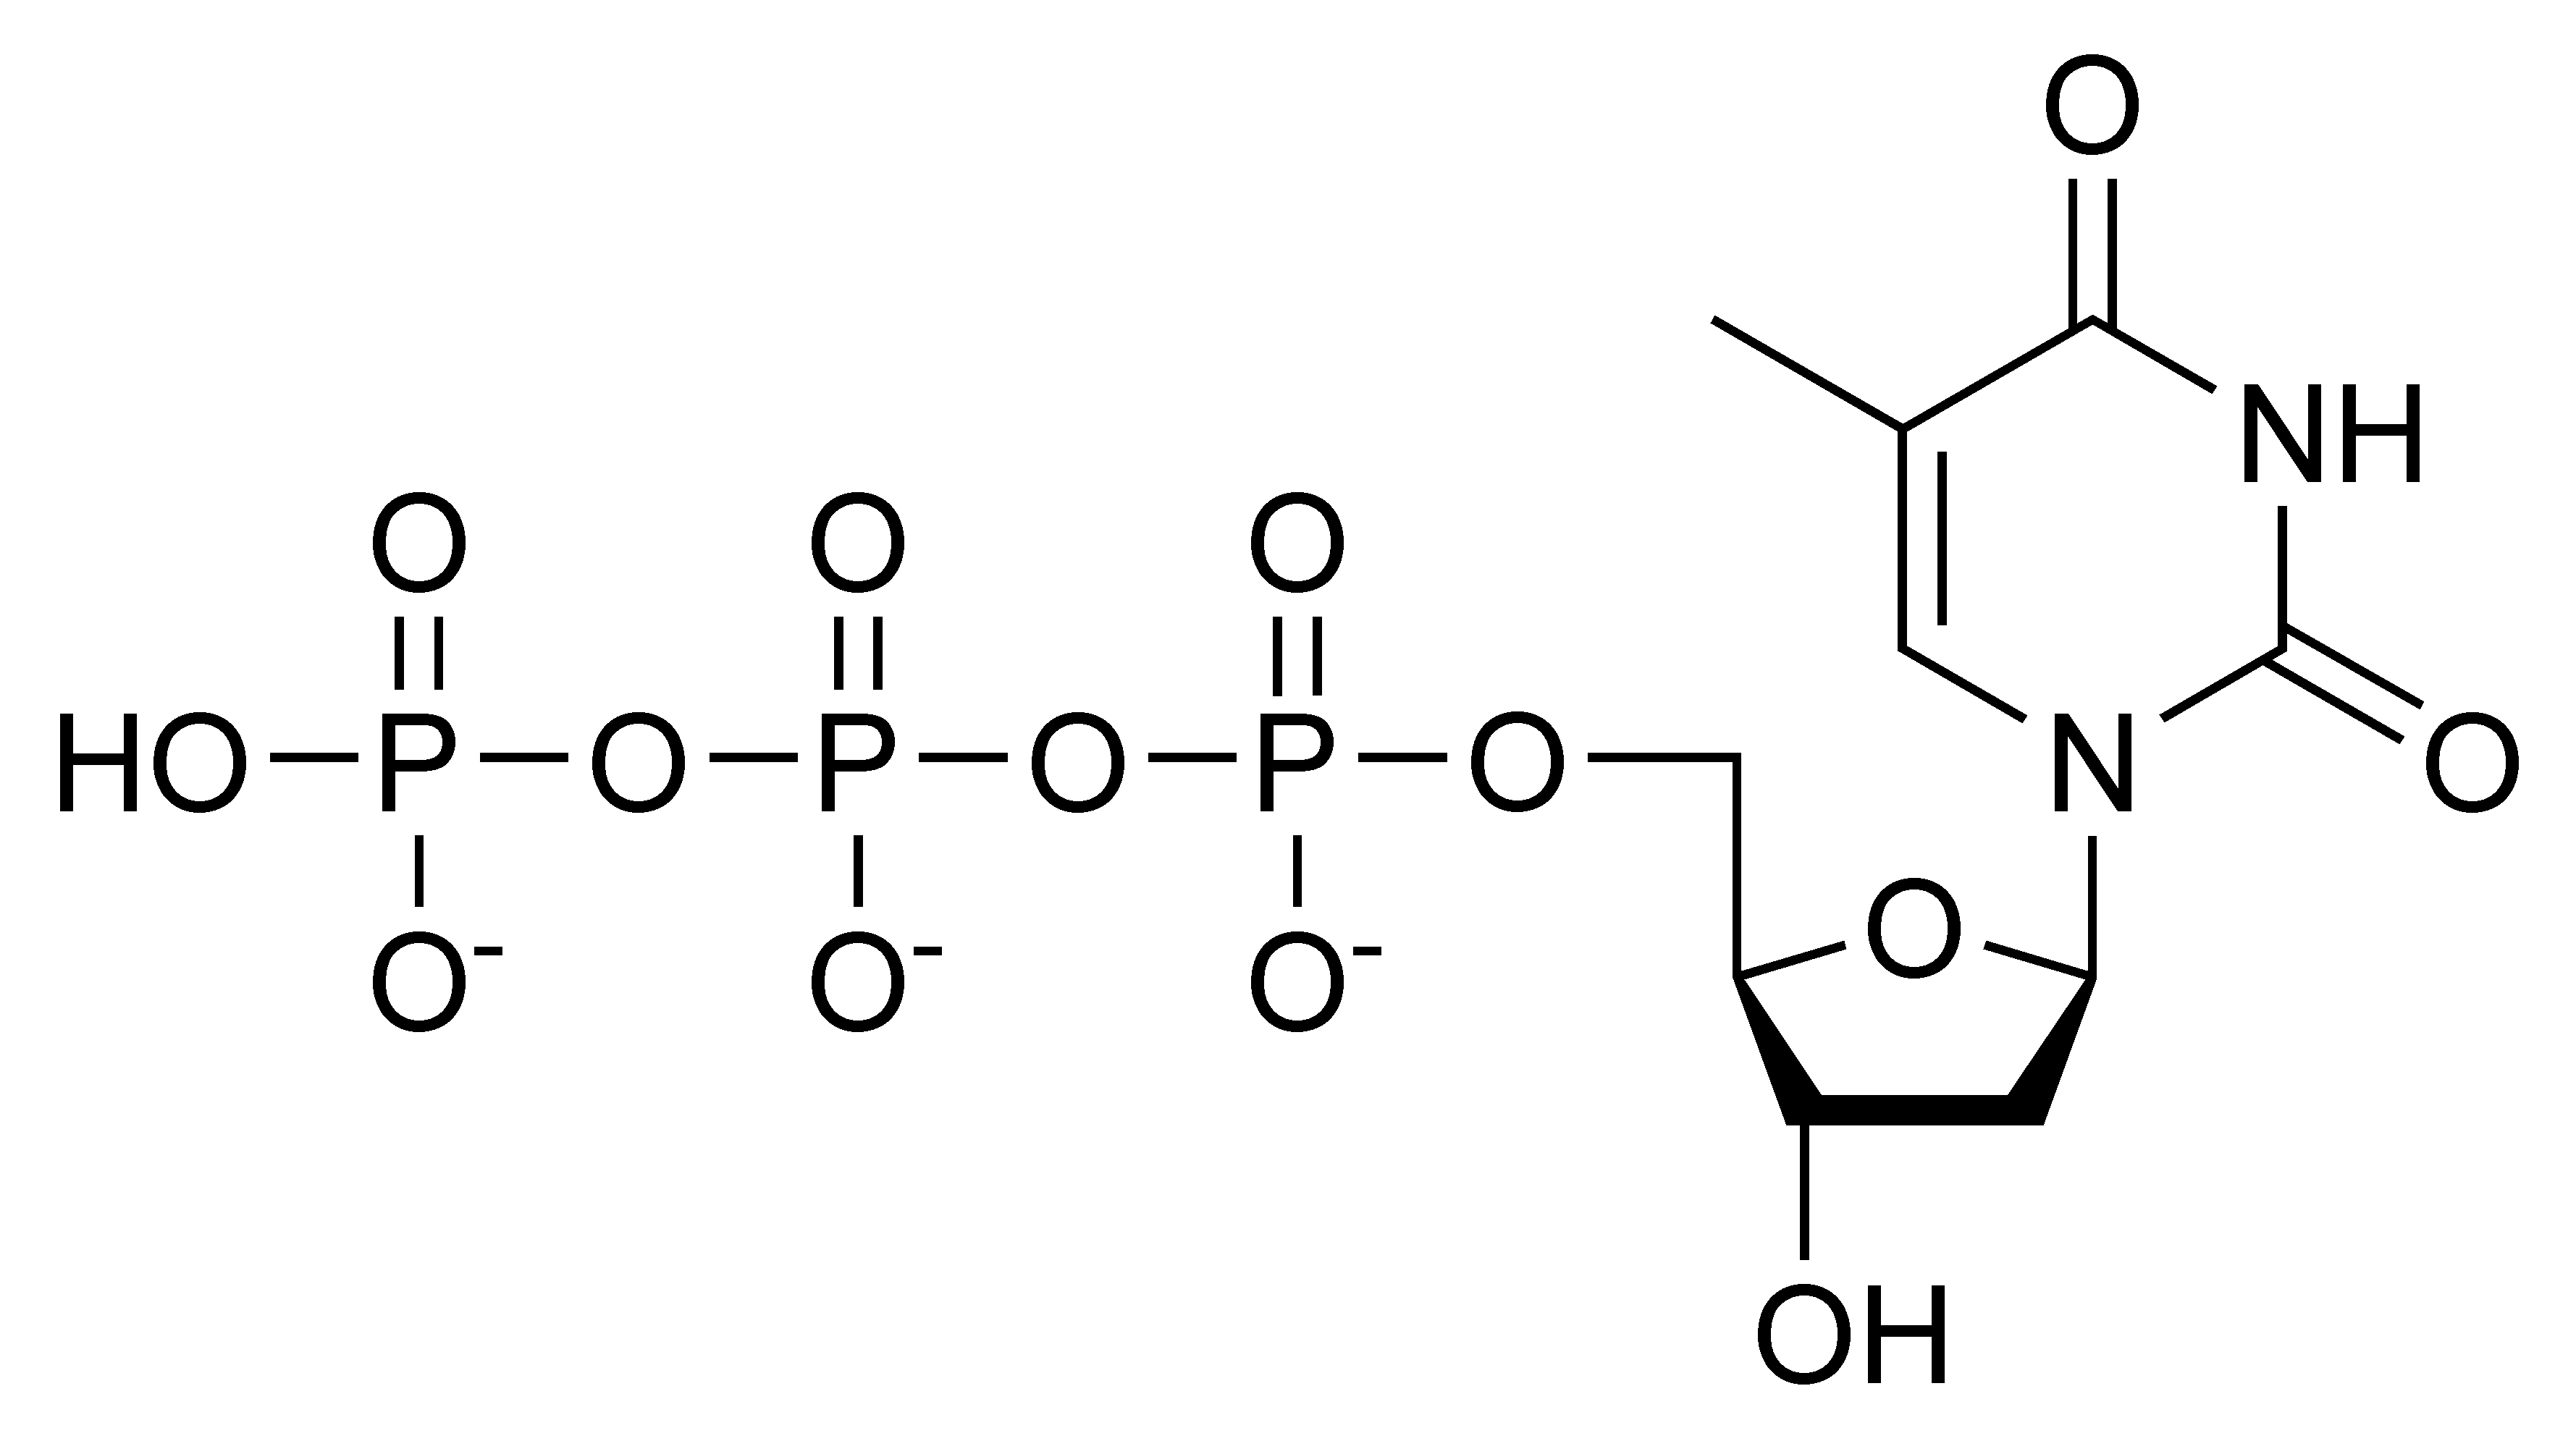 Chemical structure of deoxythymidine triphosphate